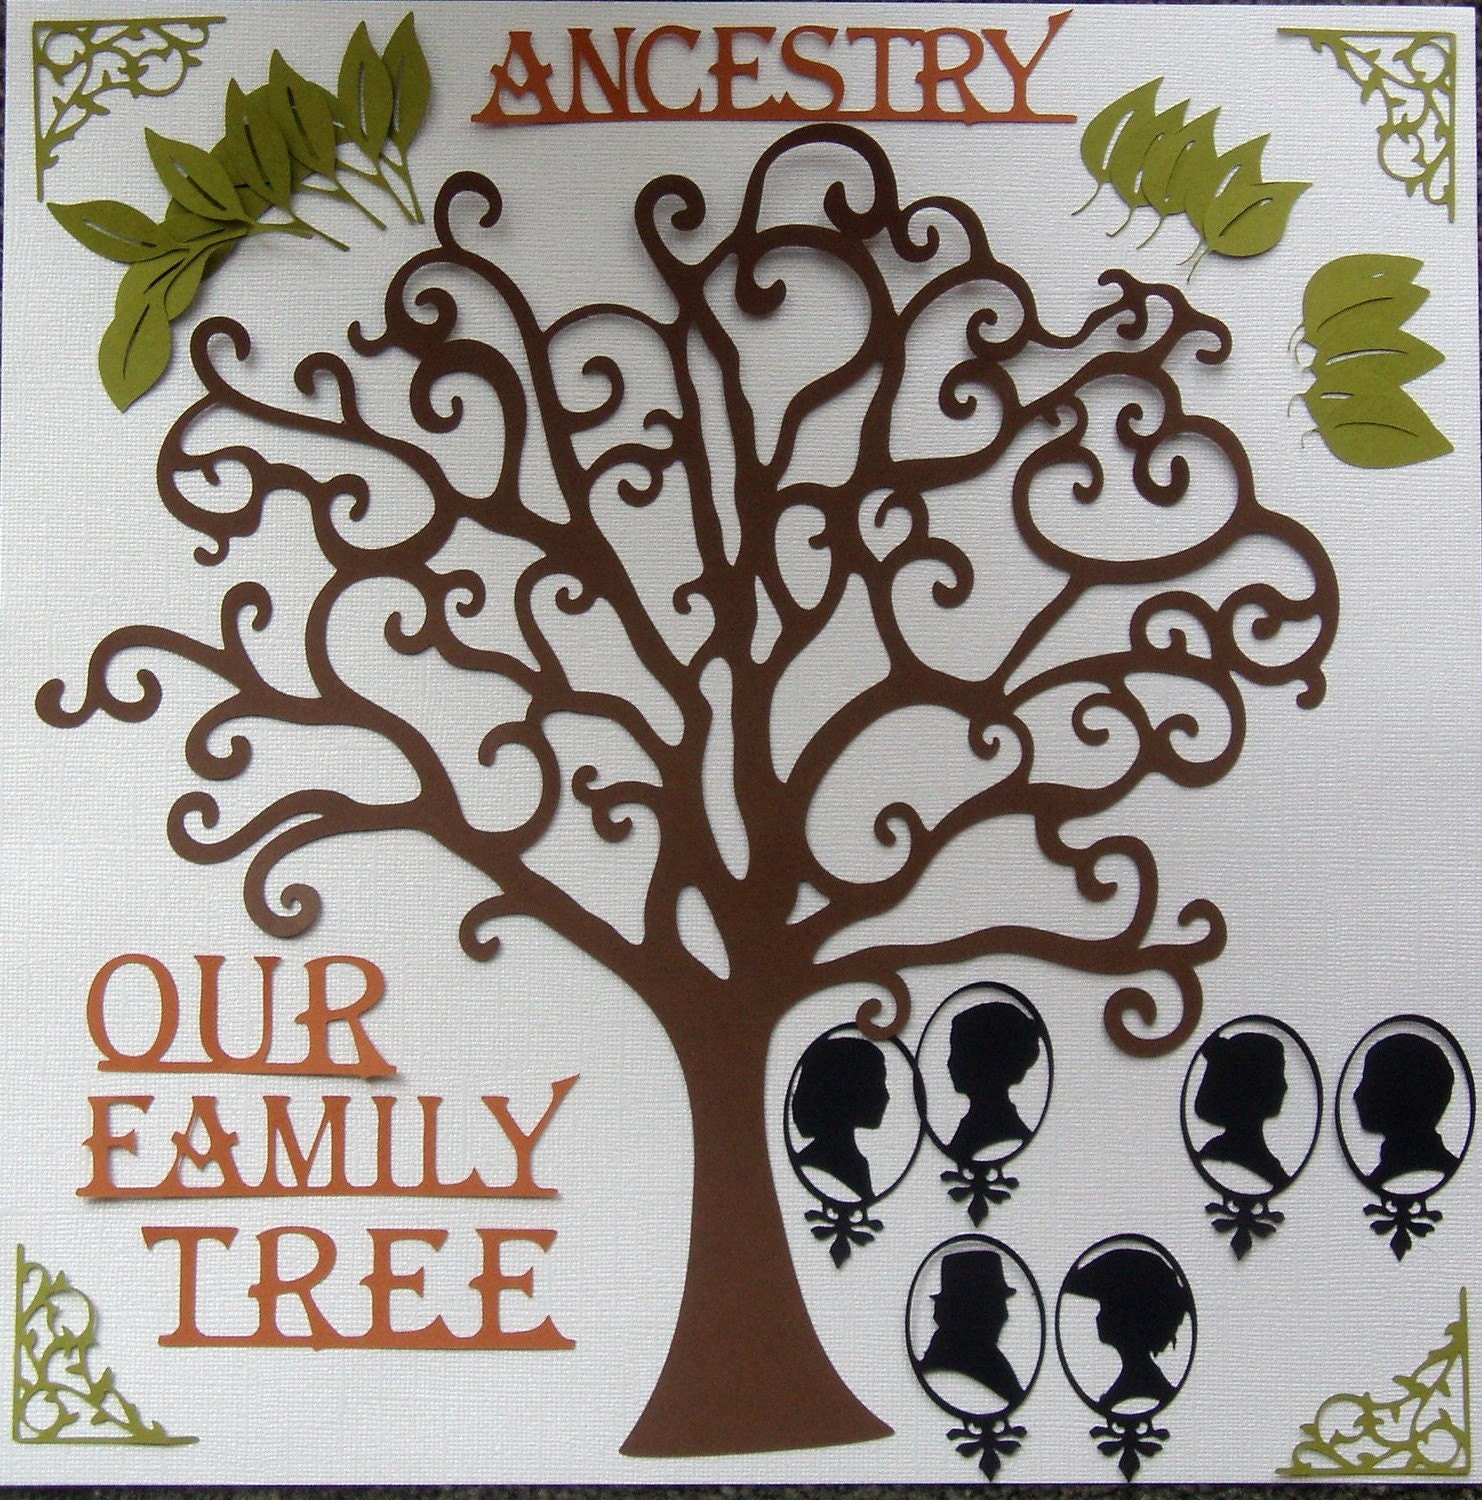 How to scrapbook family tree - Deluxe Family Tree Die Cut Pack For Scrapbooking Zoom